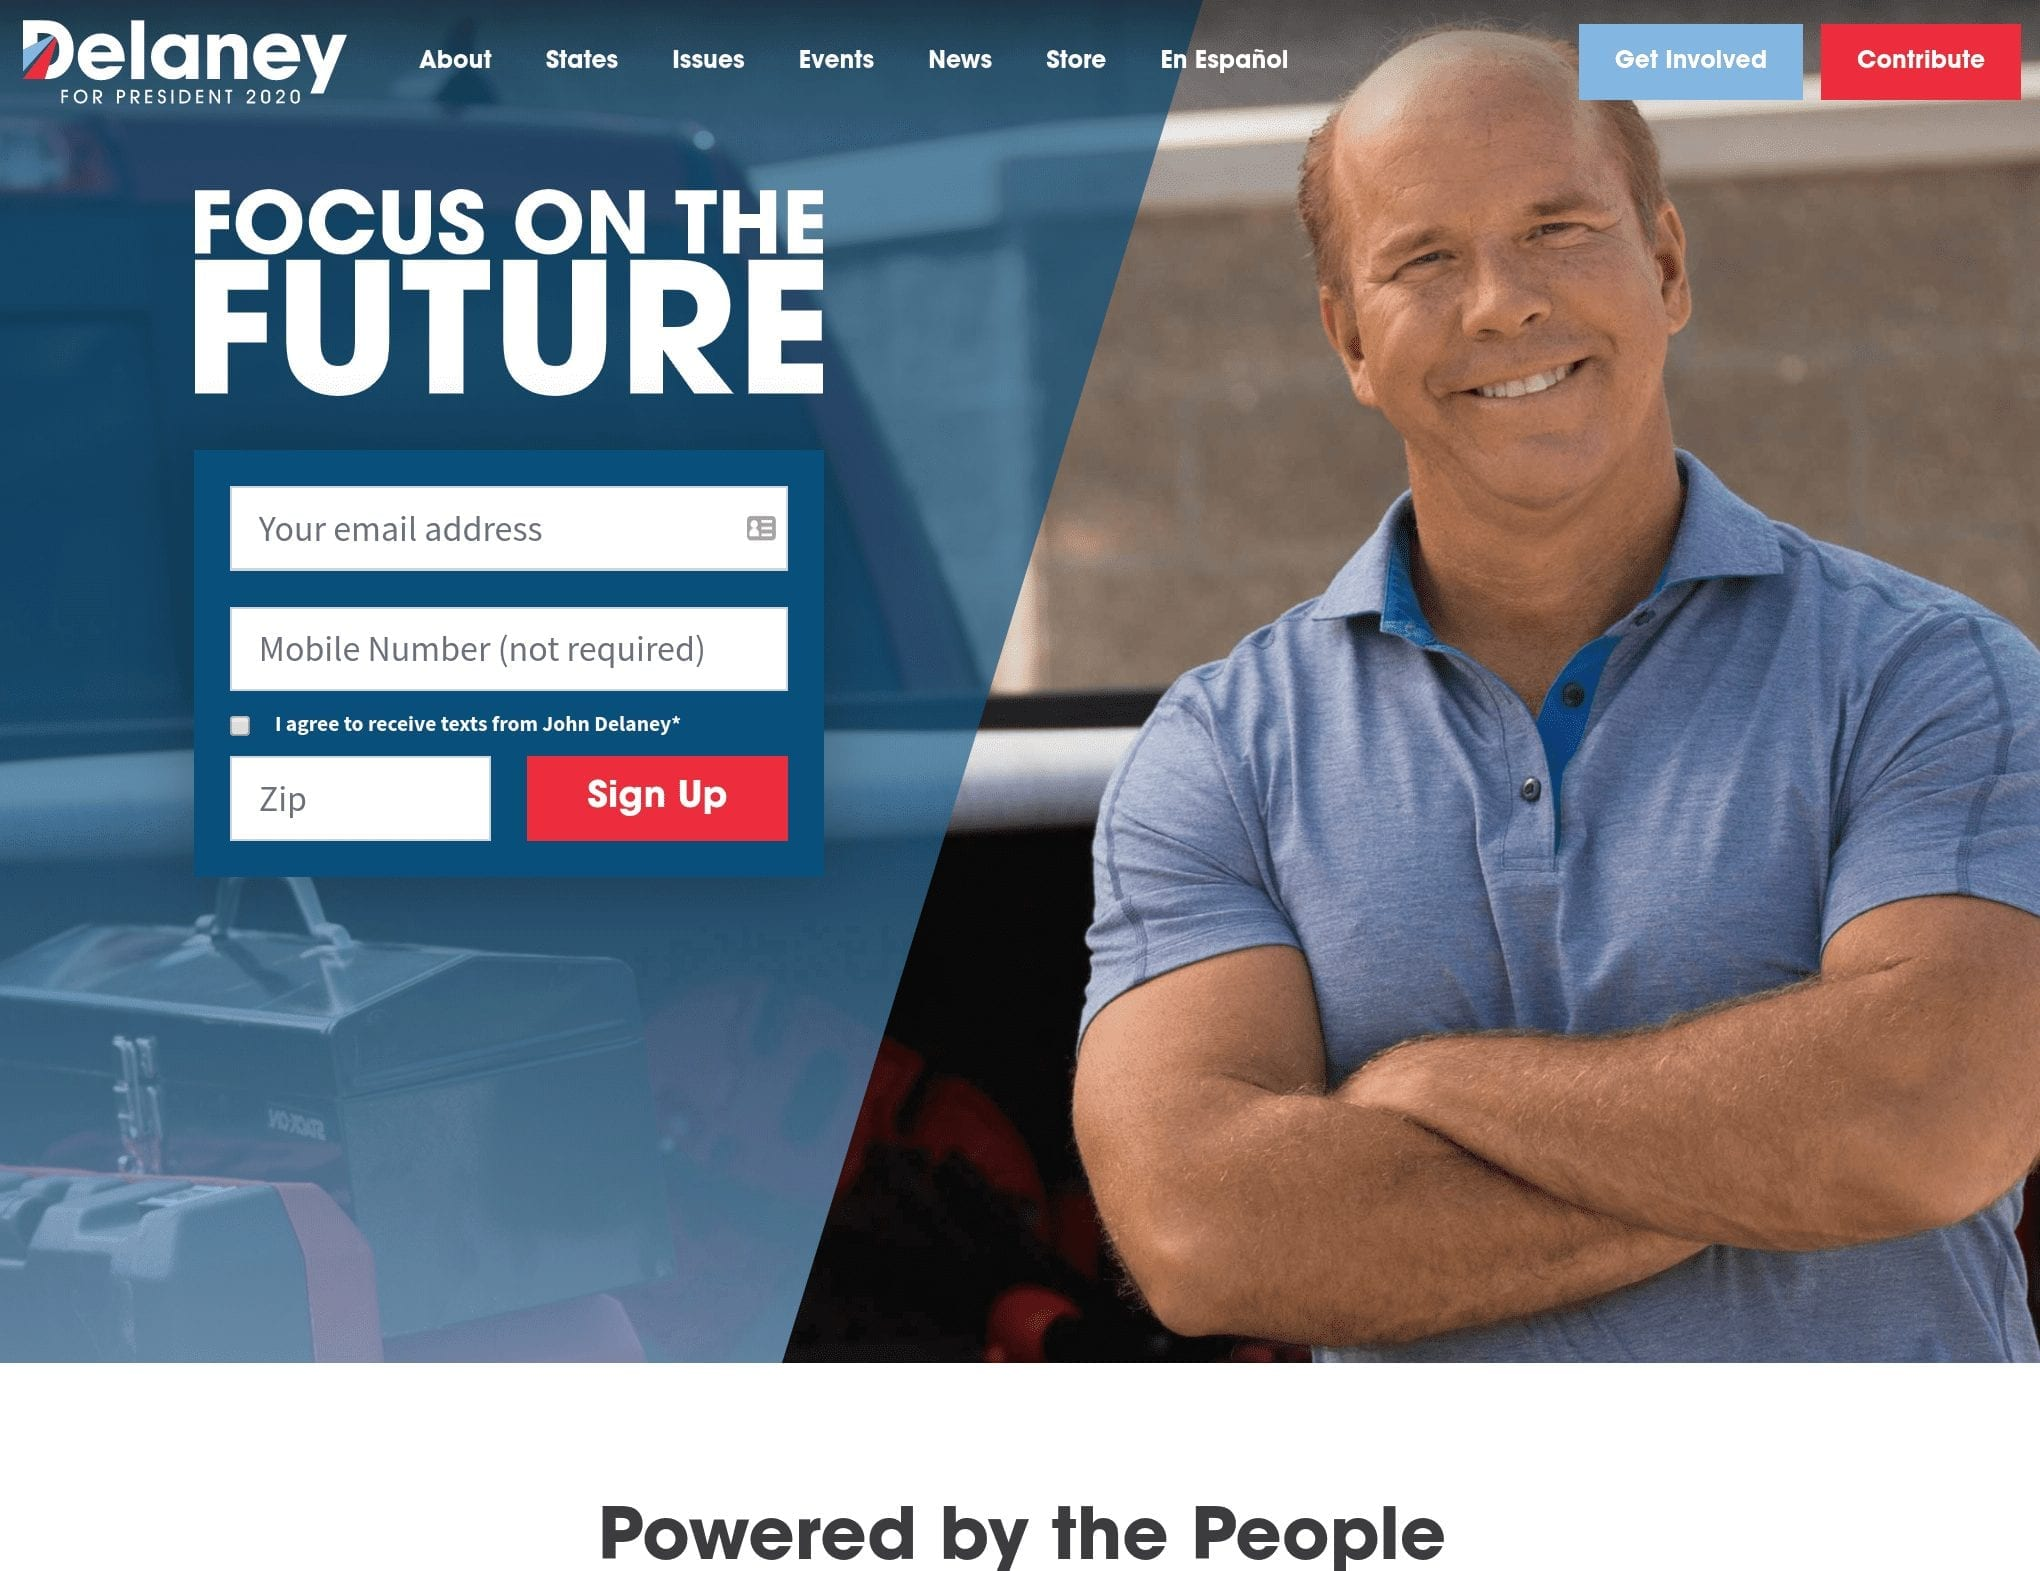 John Delaney 2020 campaign website